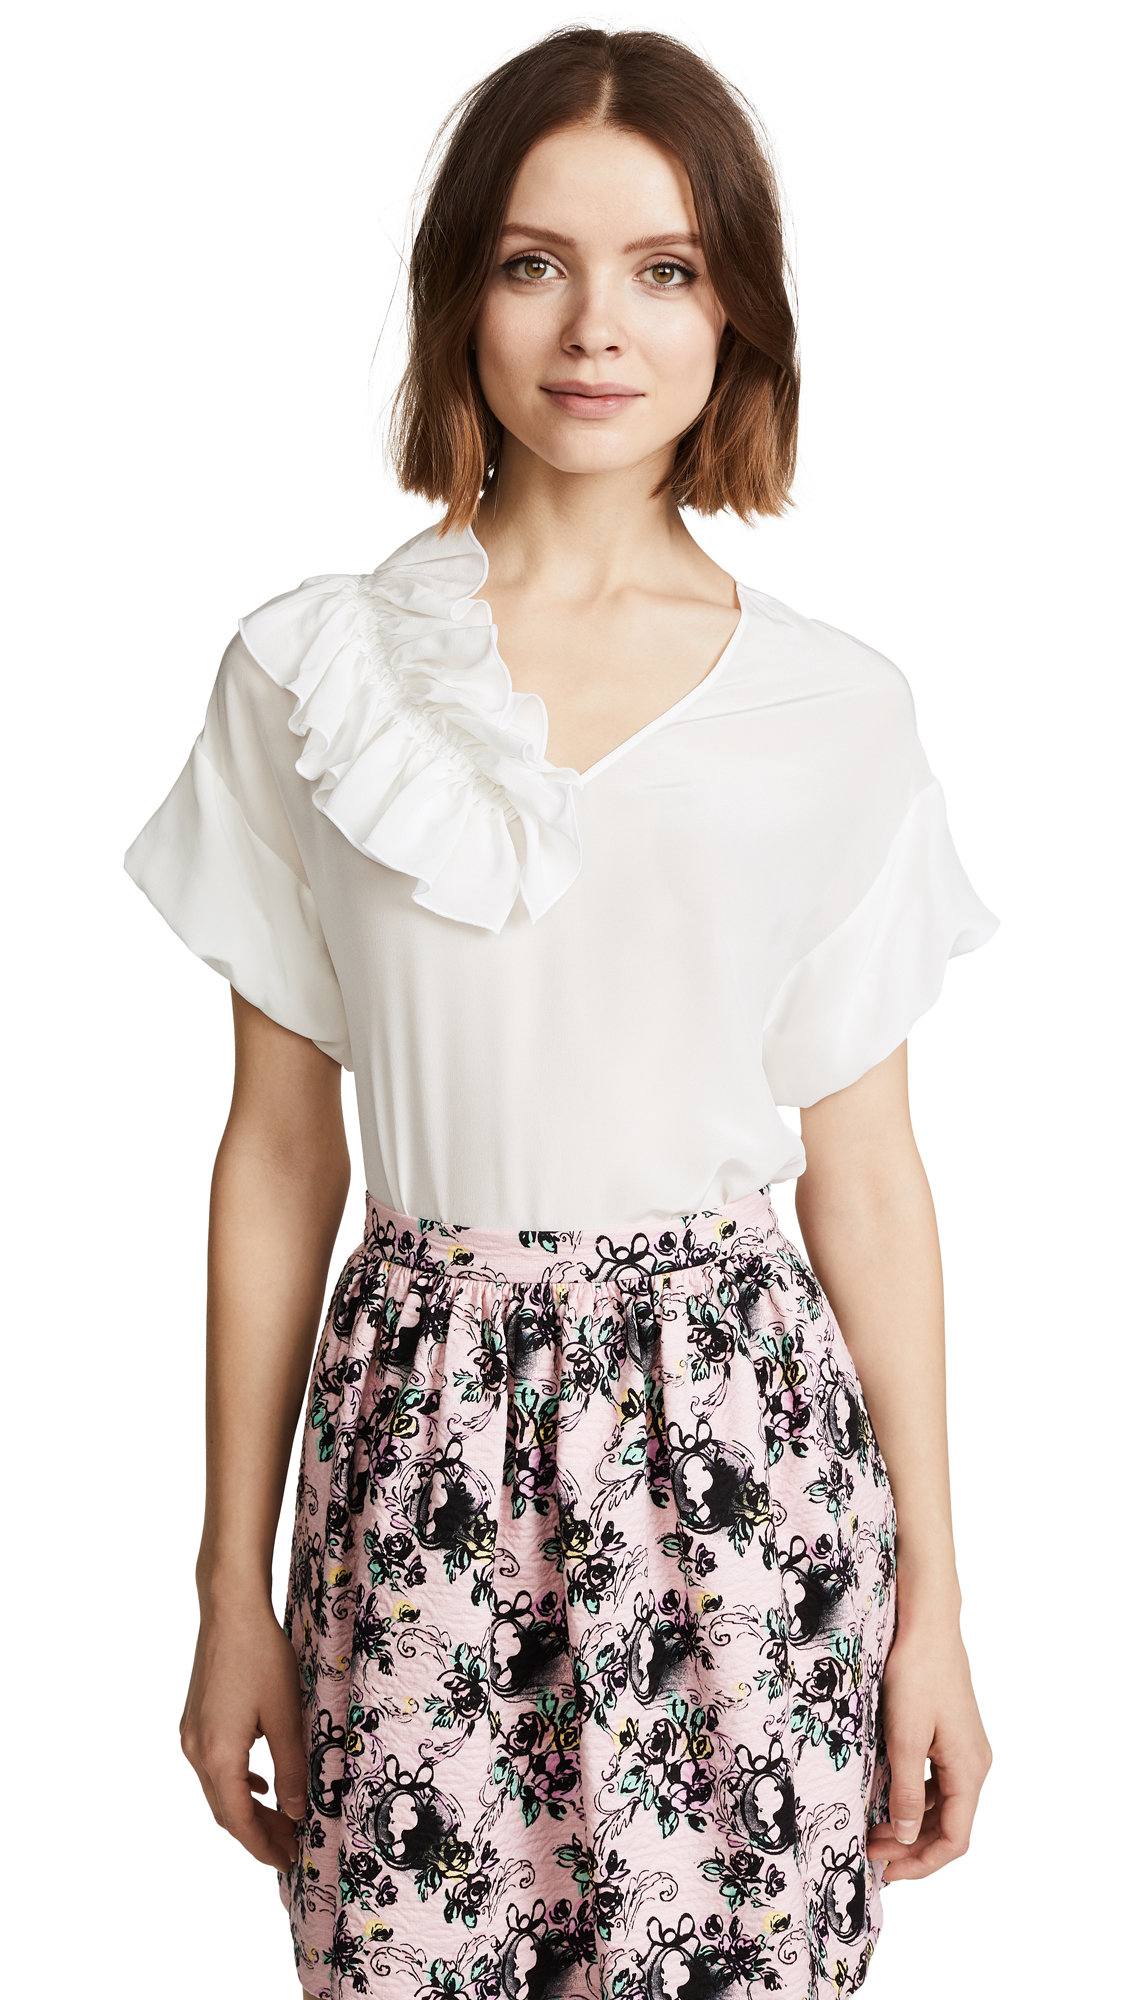 Boutique Moschino Ruffle Blouse - White